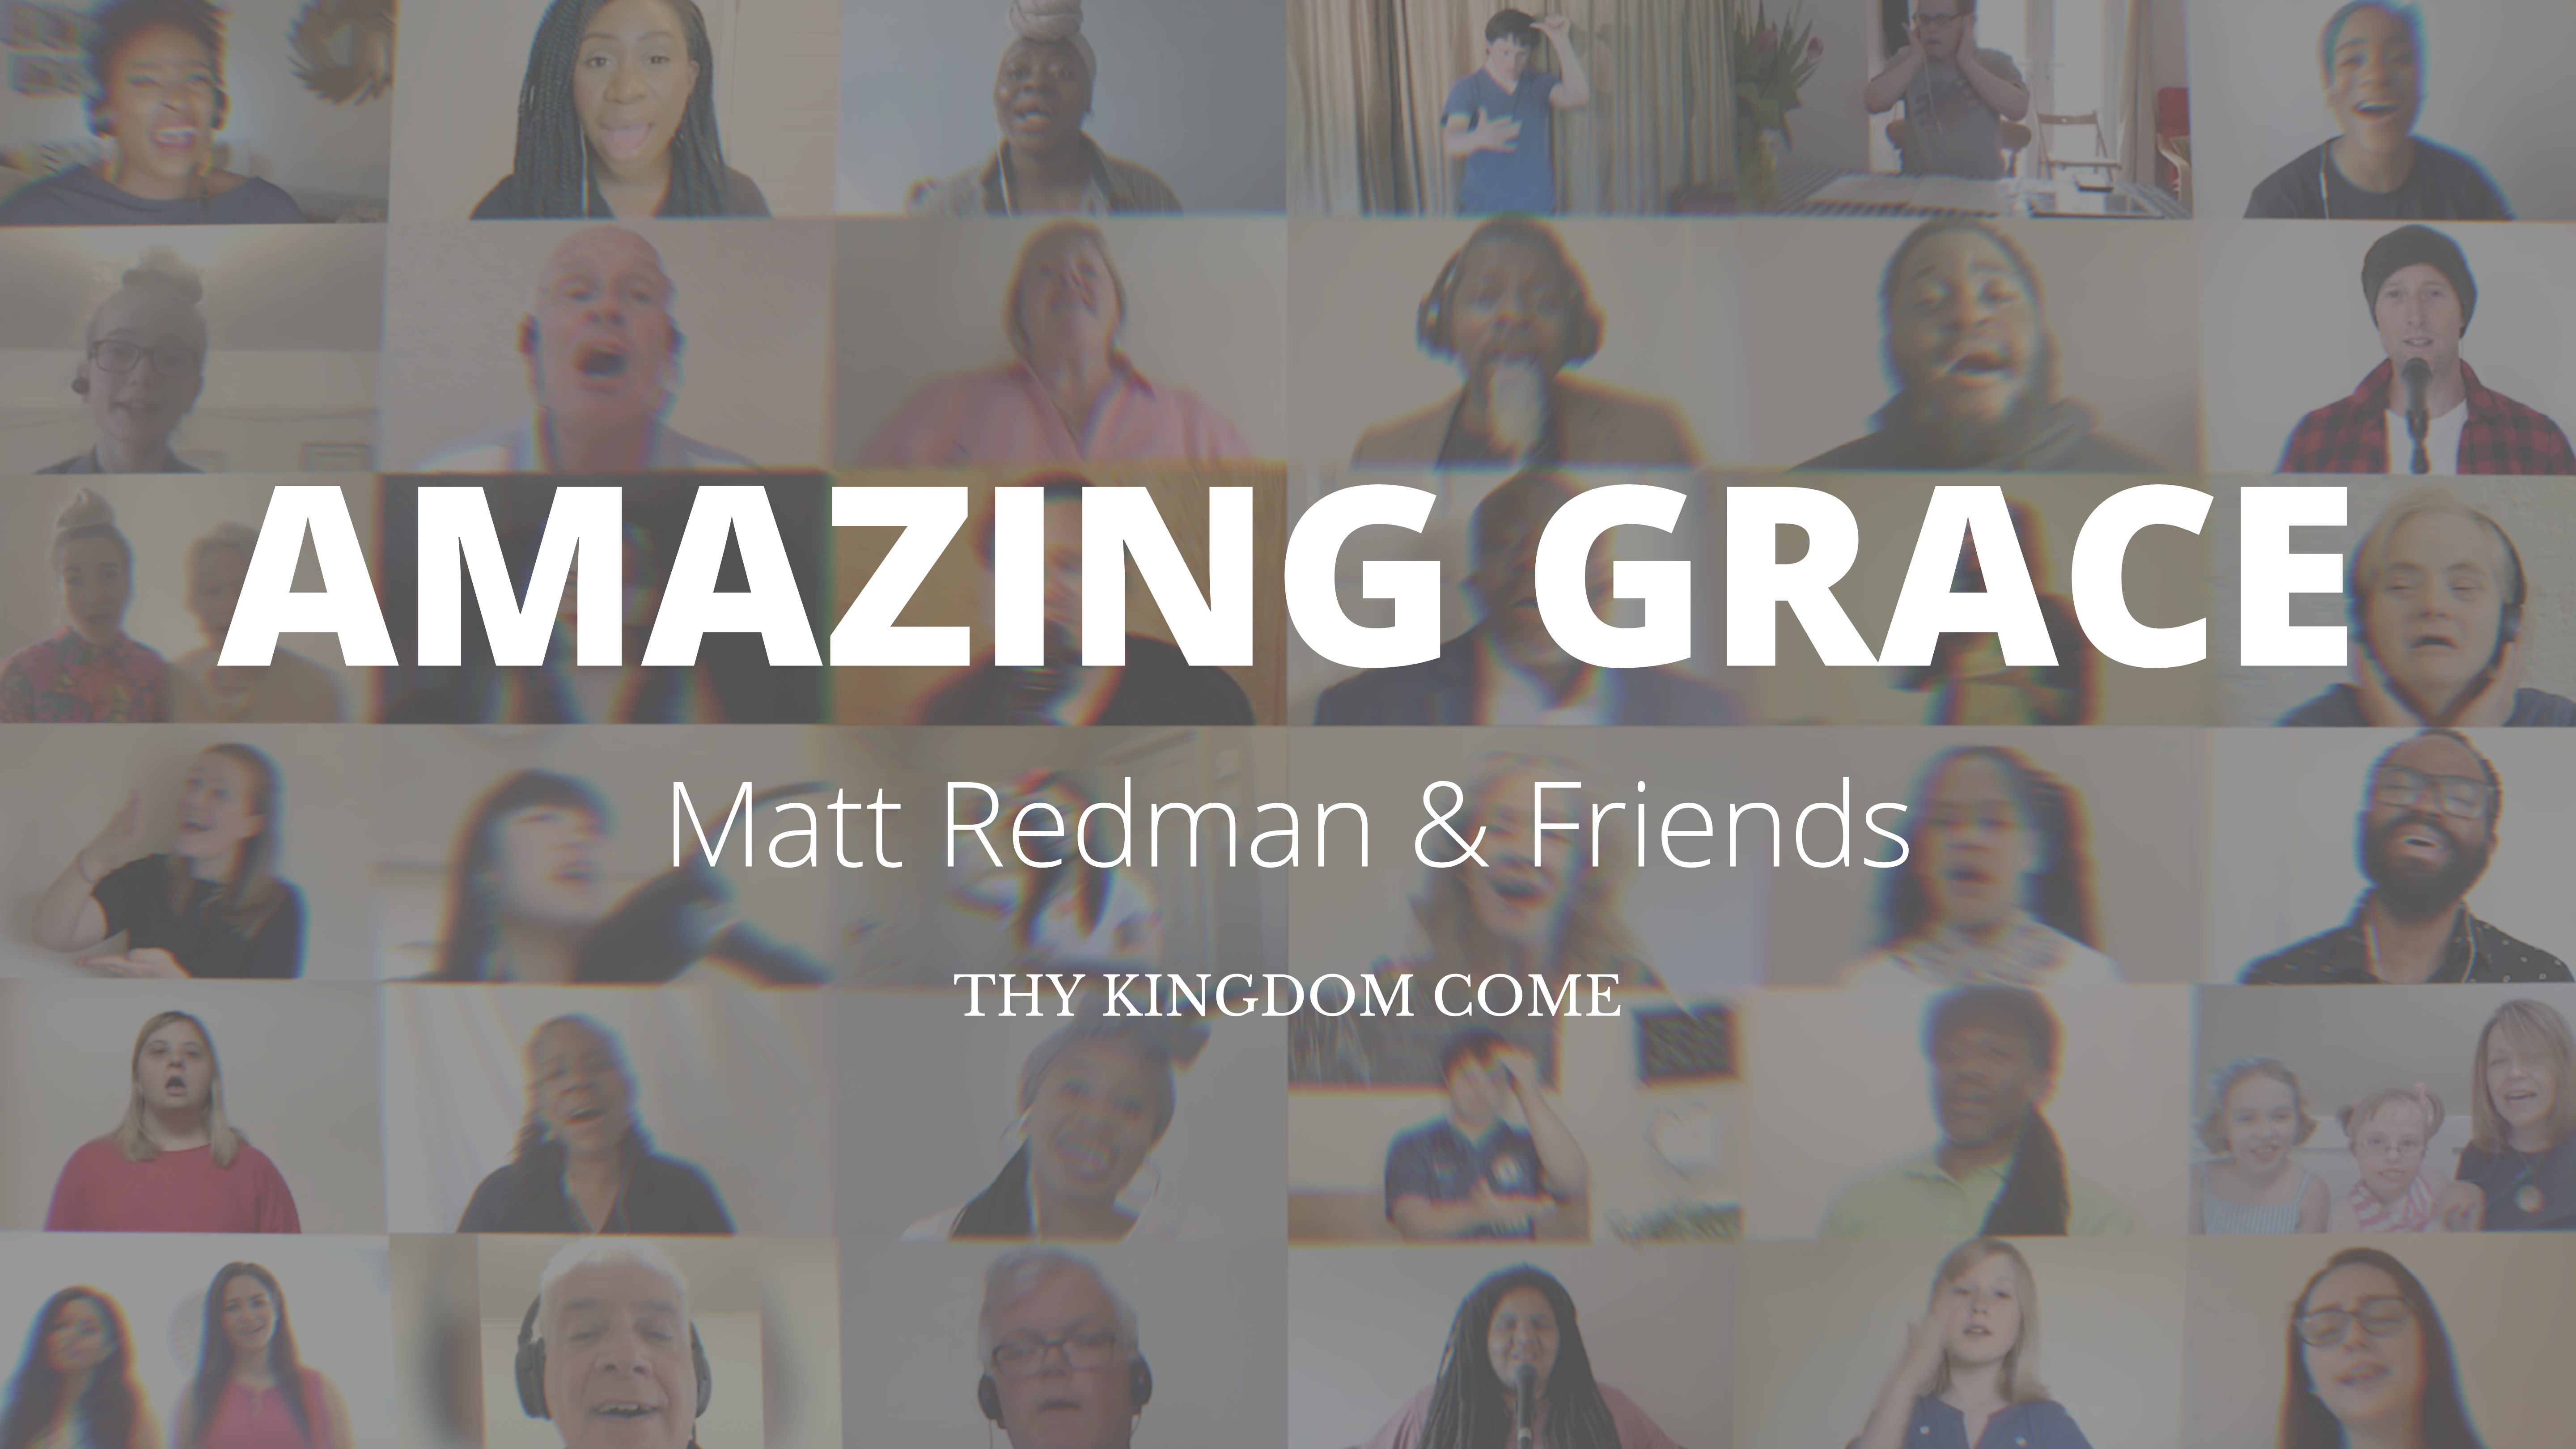 Amazing Grace, recorded by Grammy Award-winning Matt Redman and 'friends' for Thy Kingdom Come